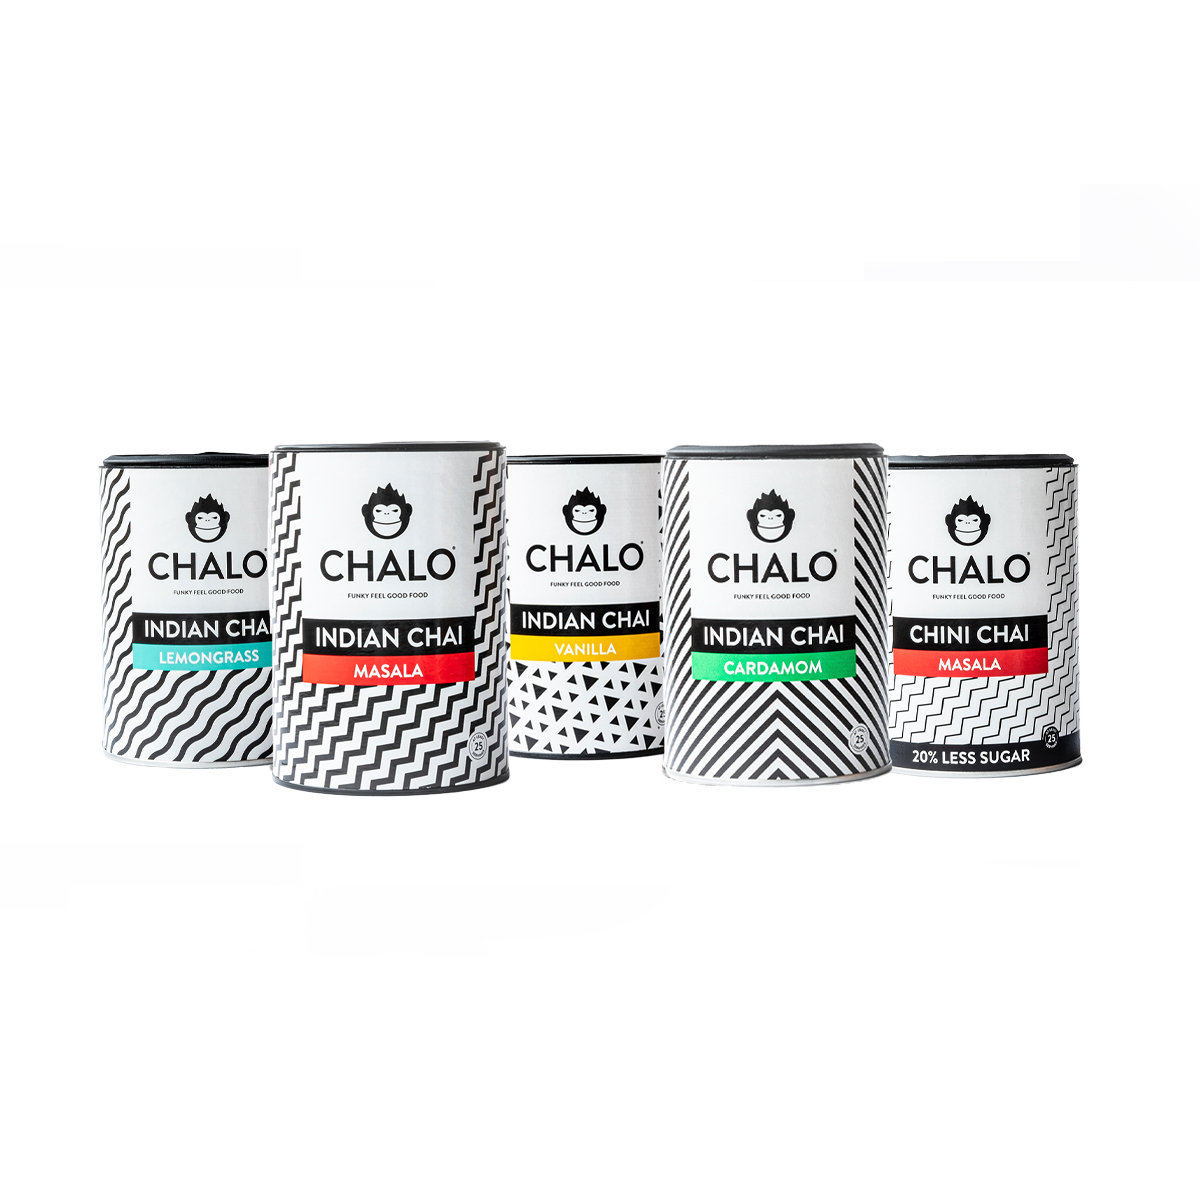 Chai latte assortment - 5 flavours of chalo chai